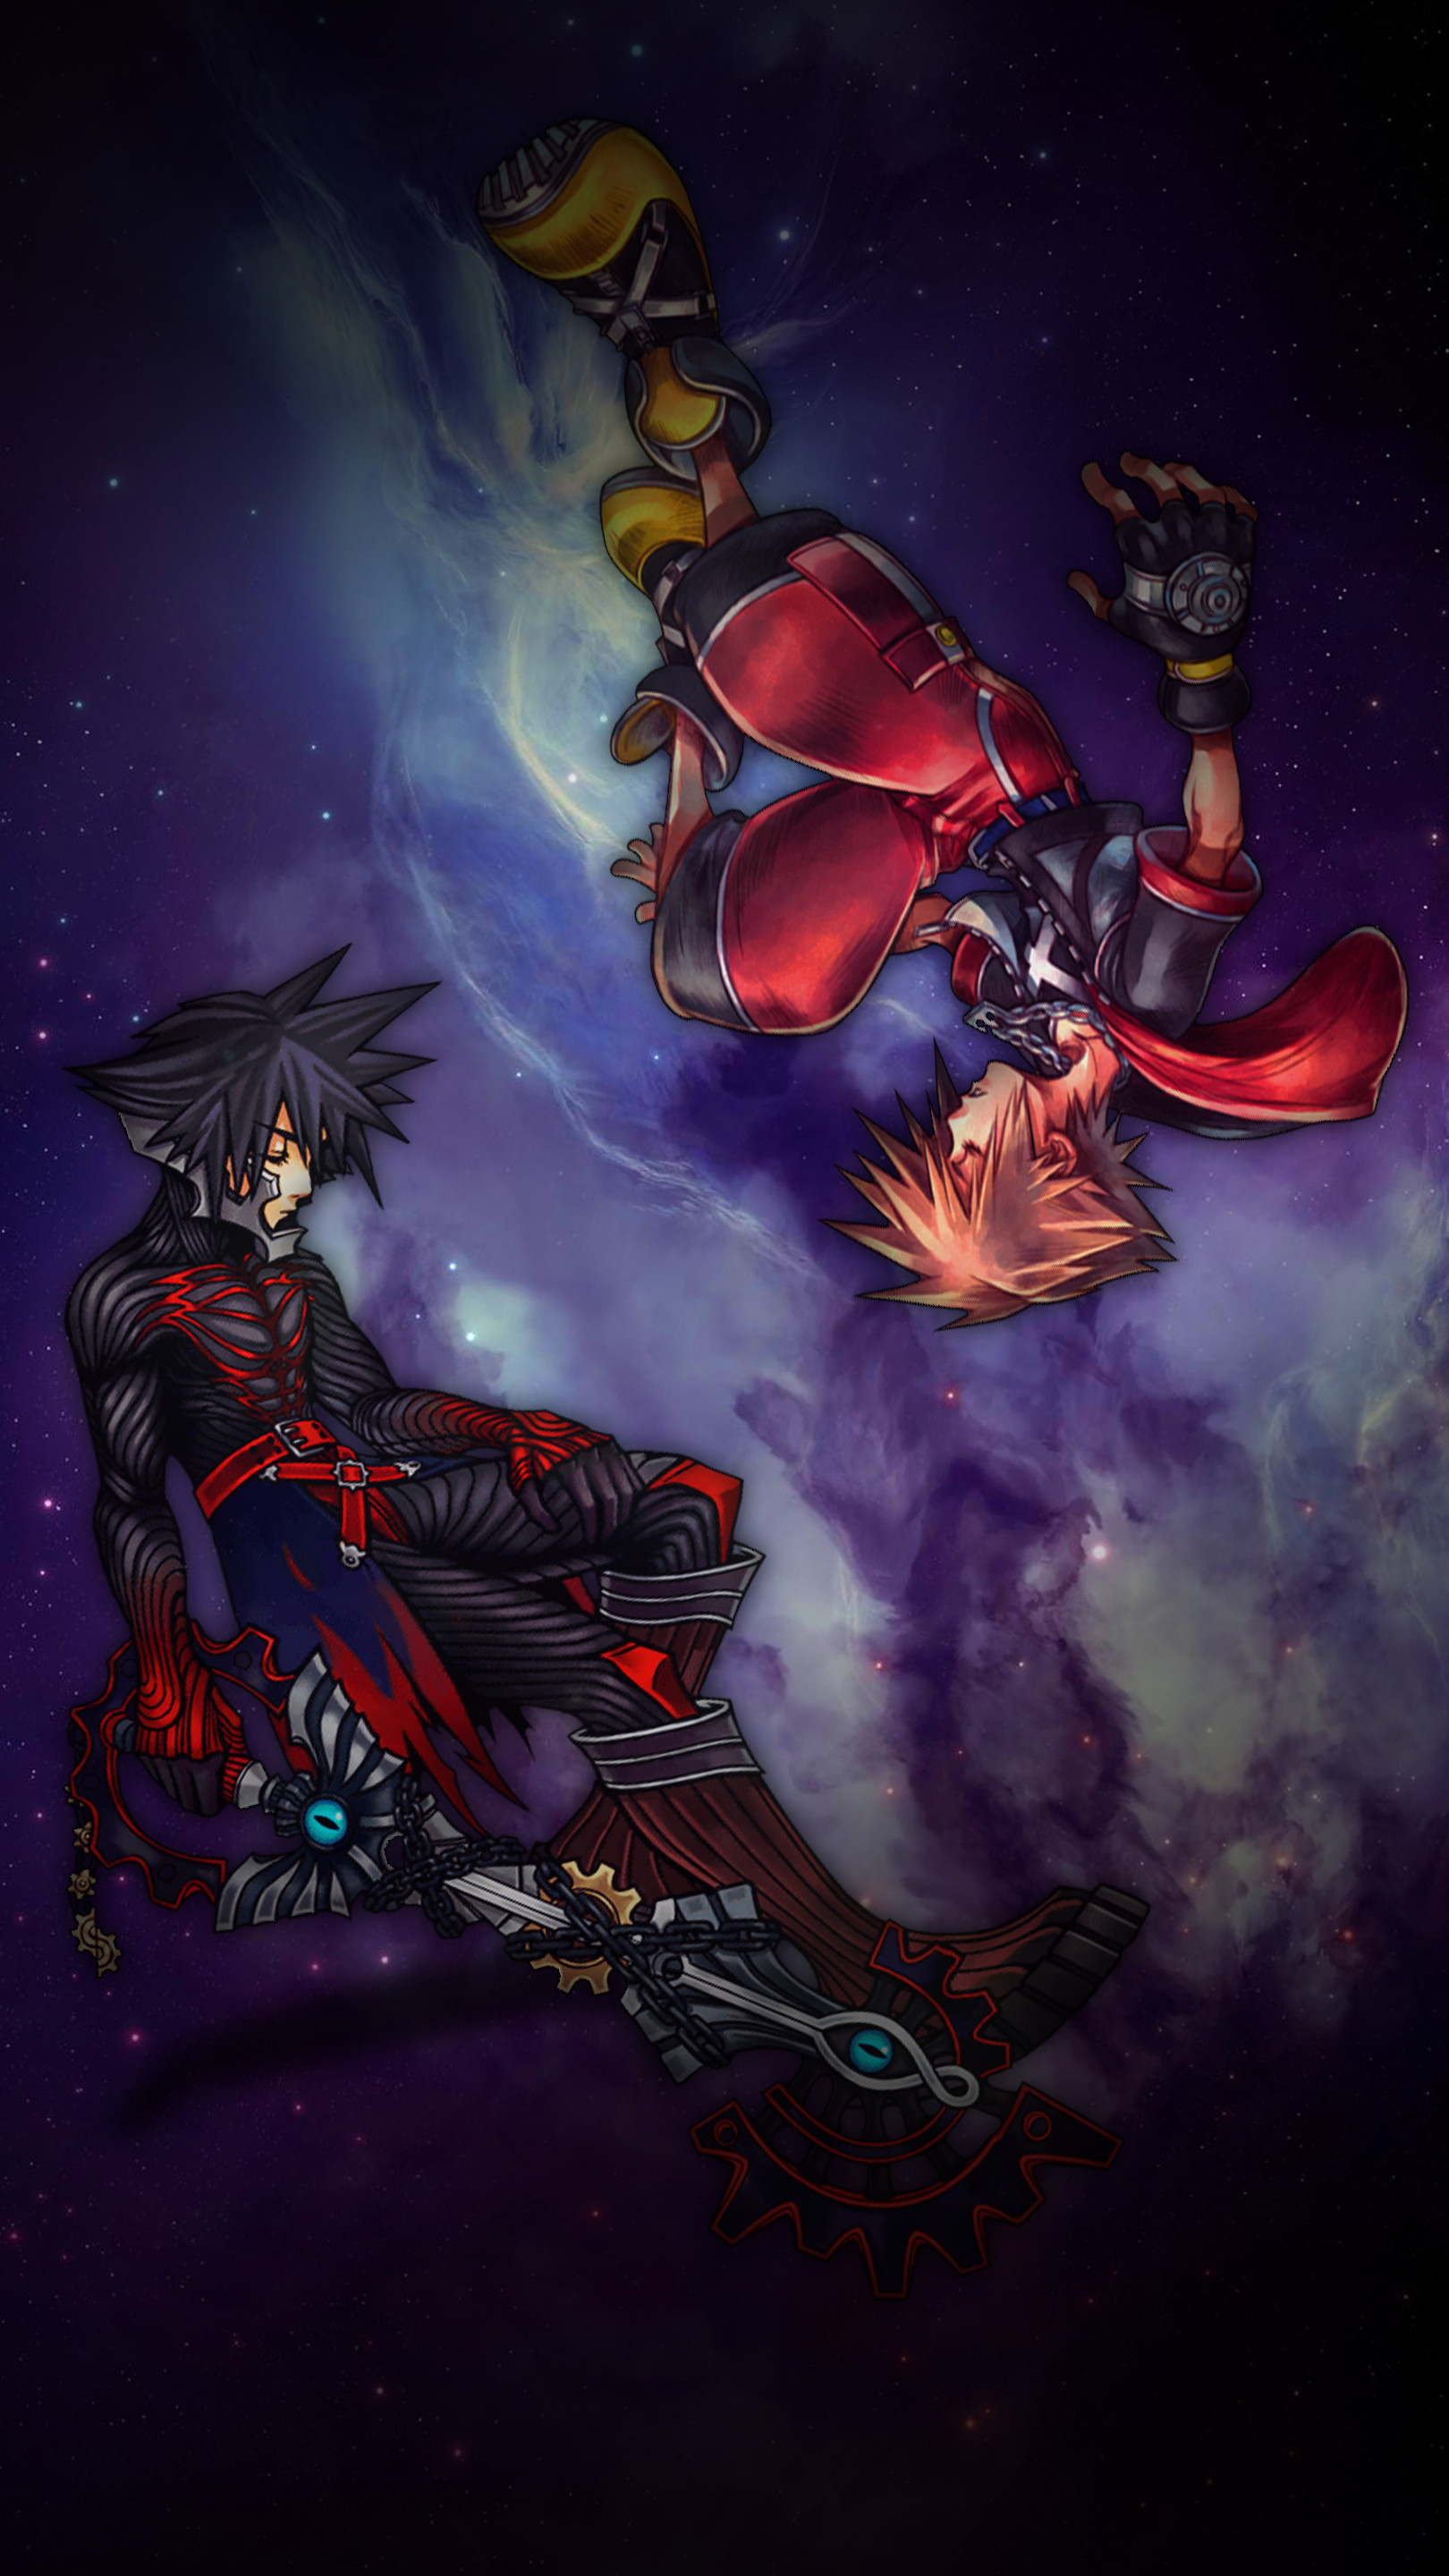 1620x2880 ... Sora and Vanitas Kingdom Hearts iPhone Wallpaper-C by judah2x0